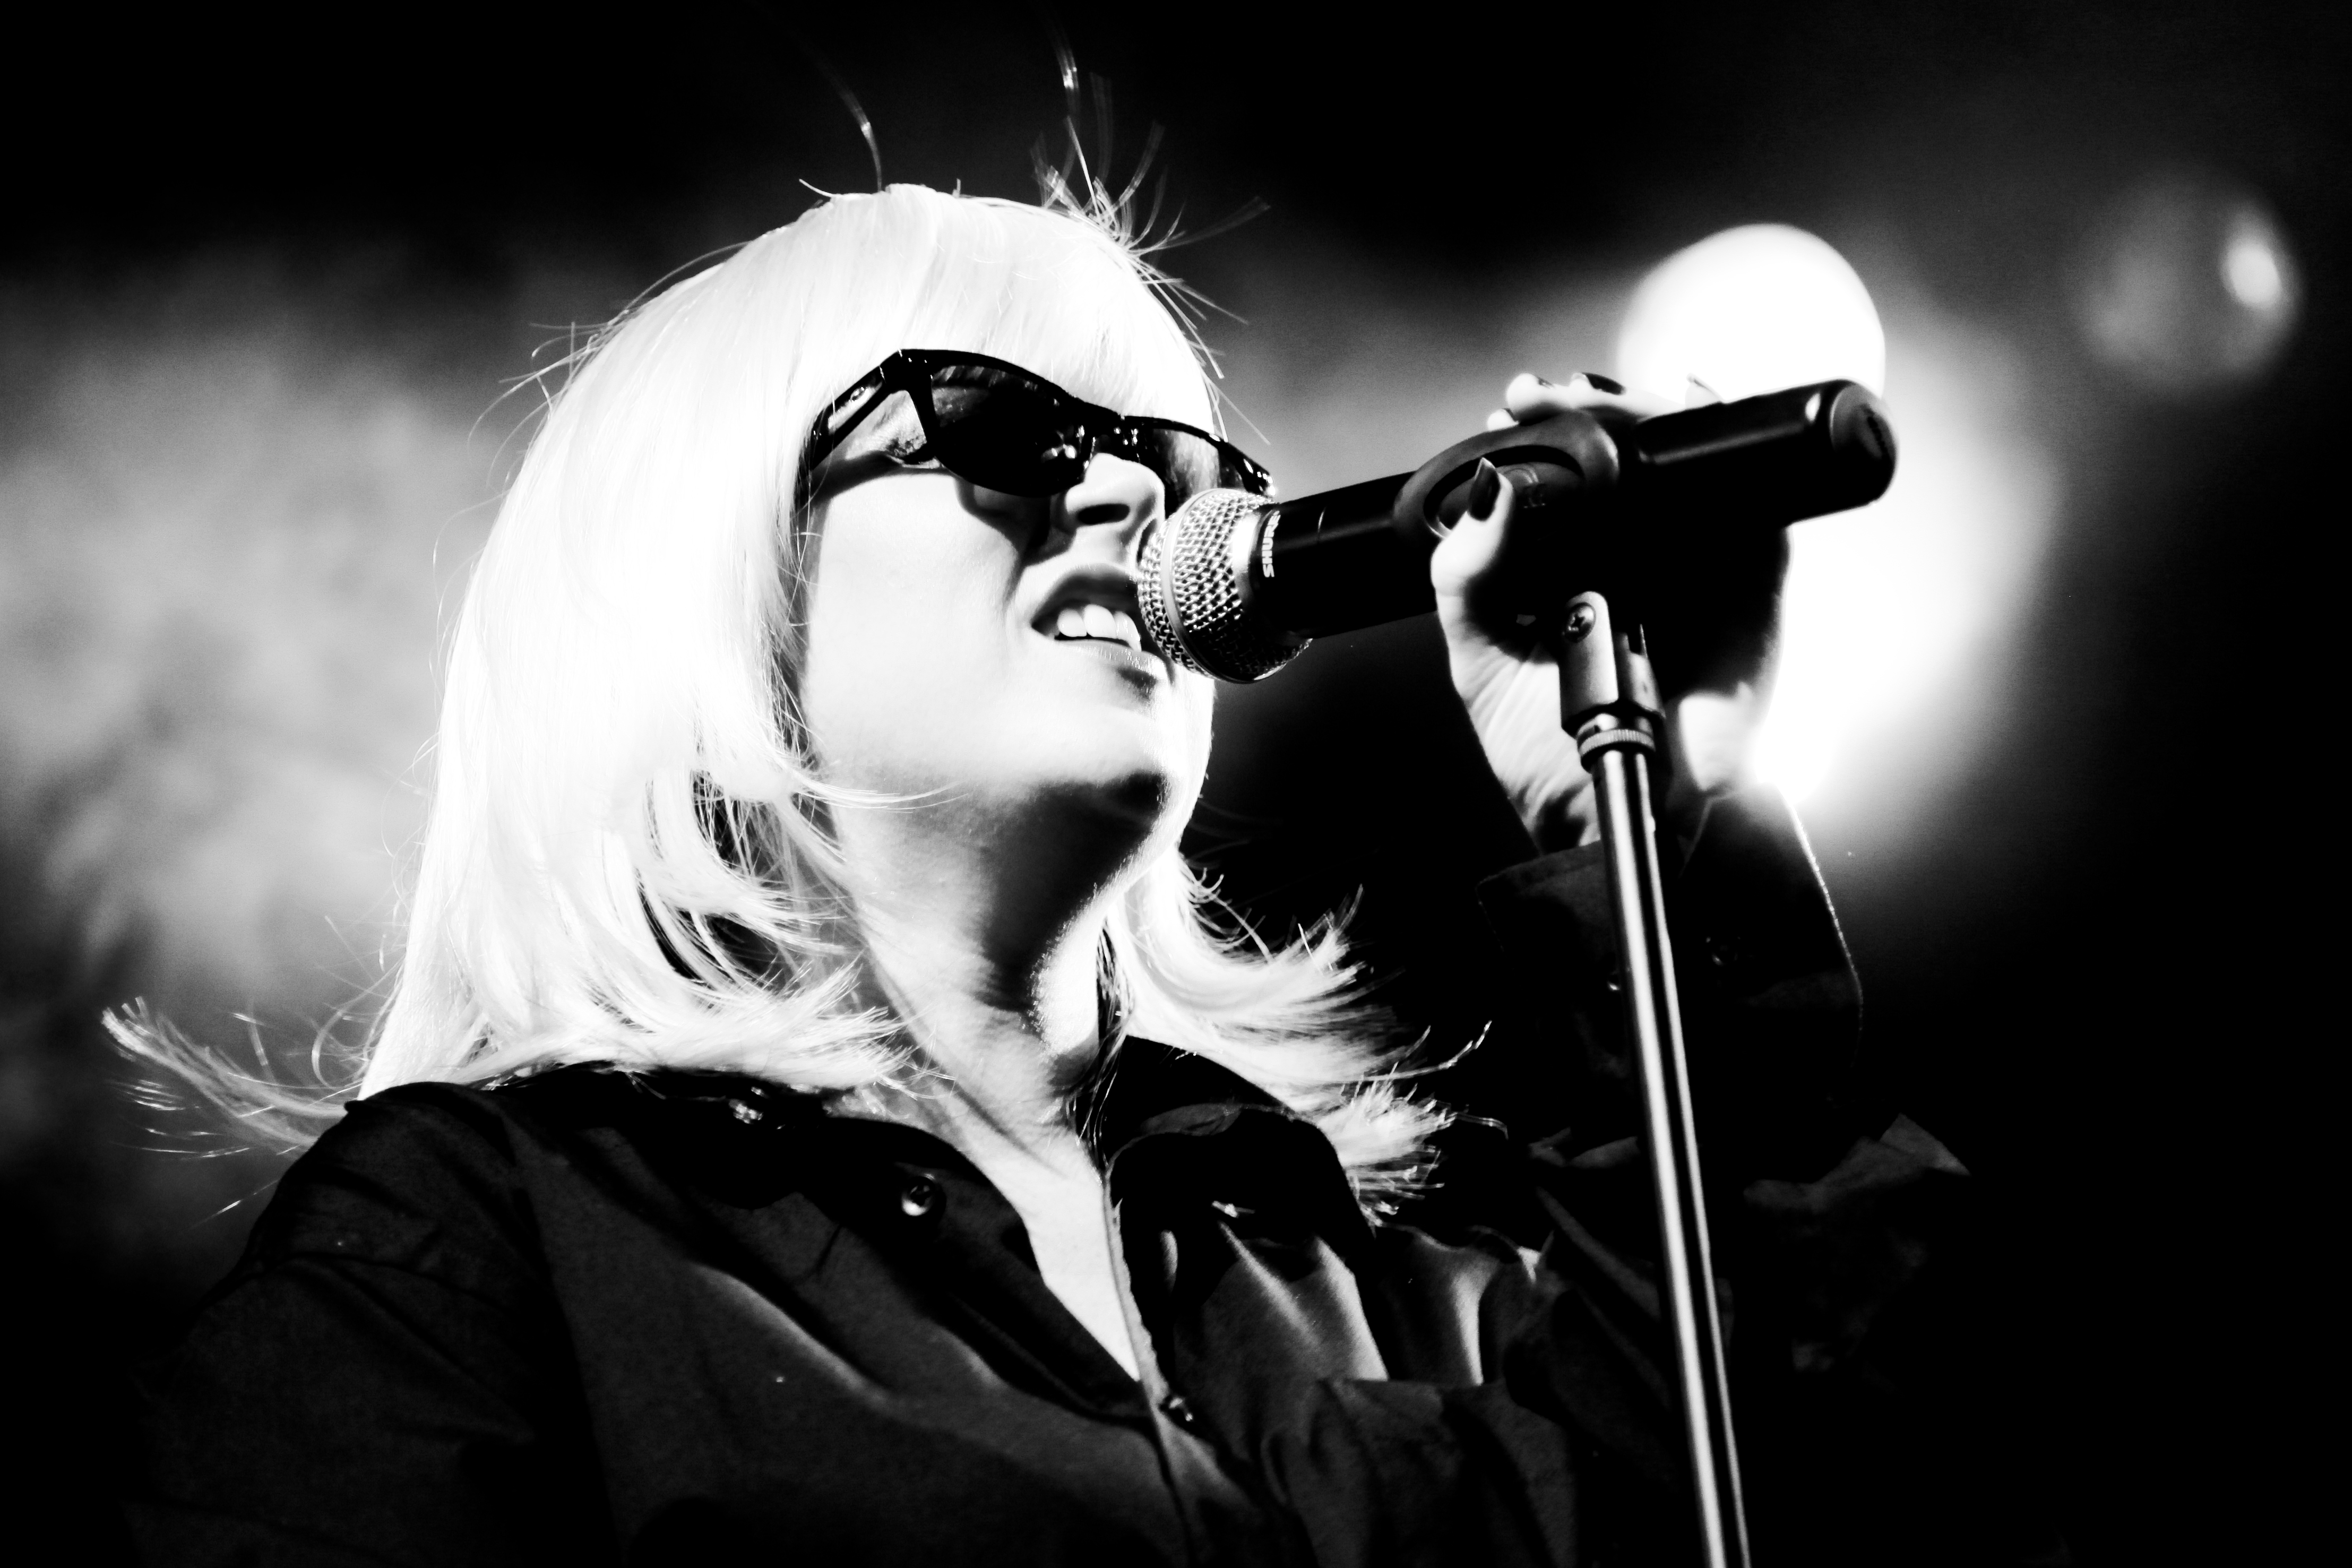 Atomic Blondie Live at The Green, Kinross